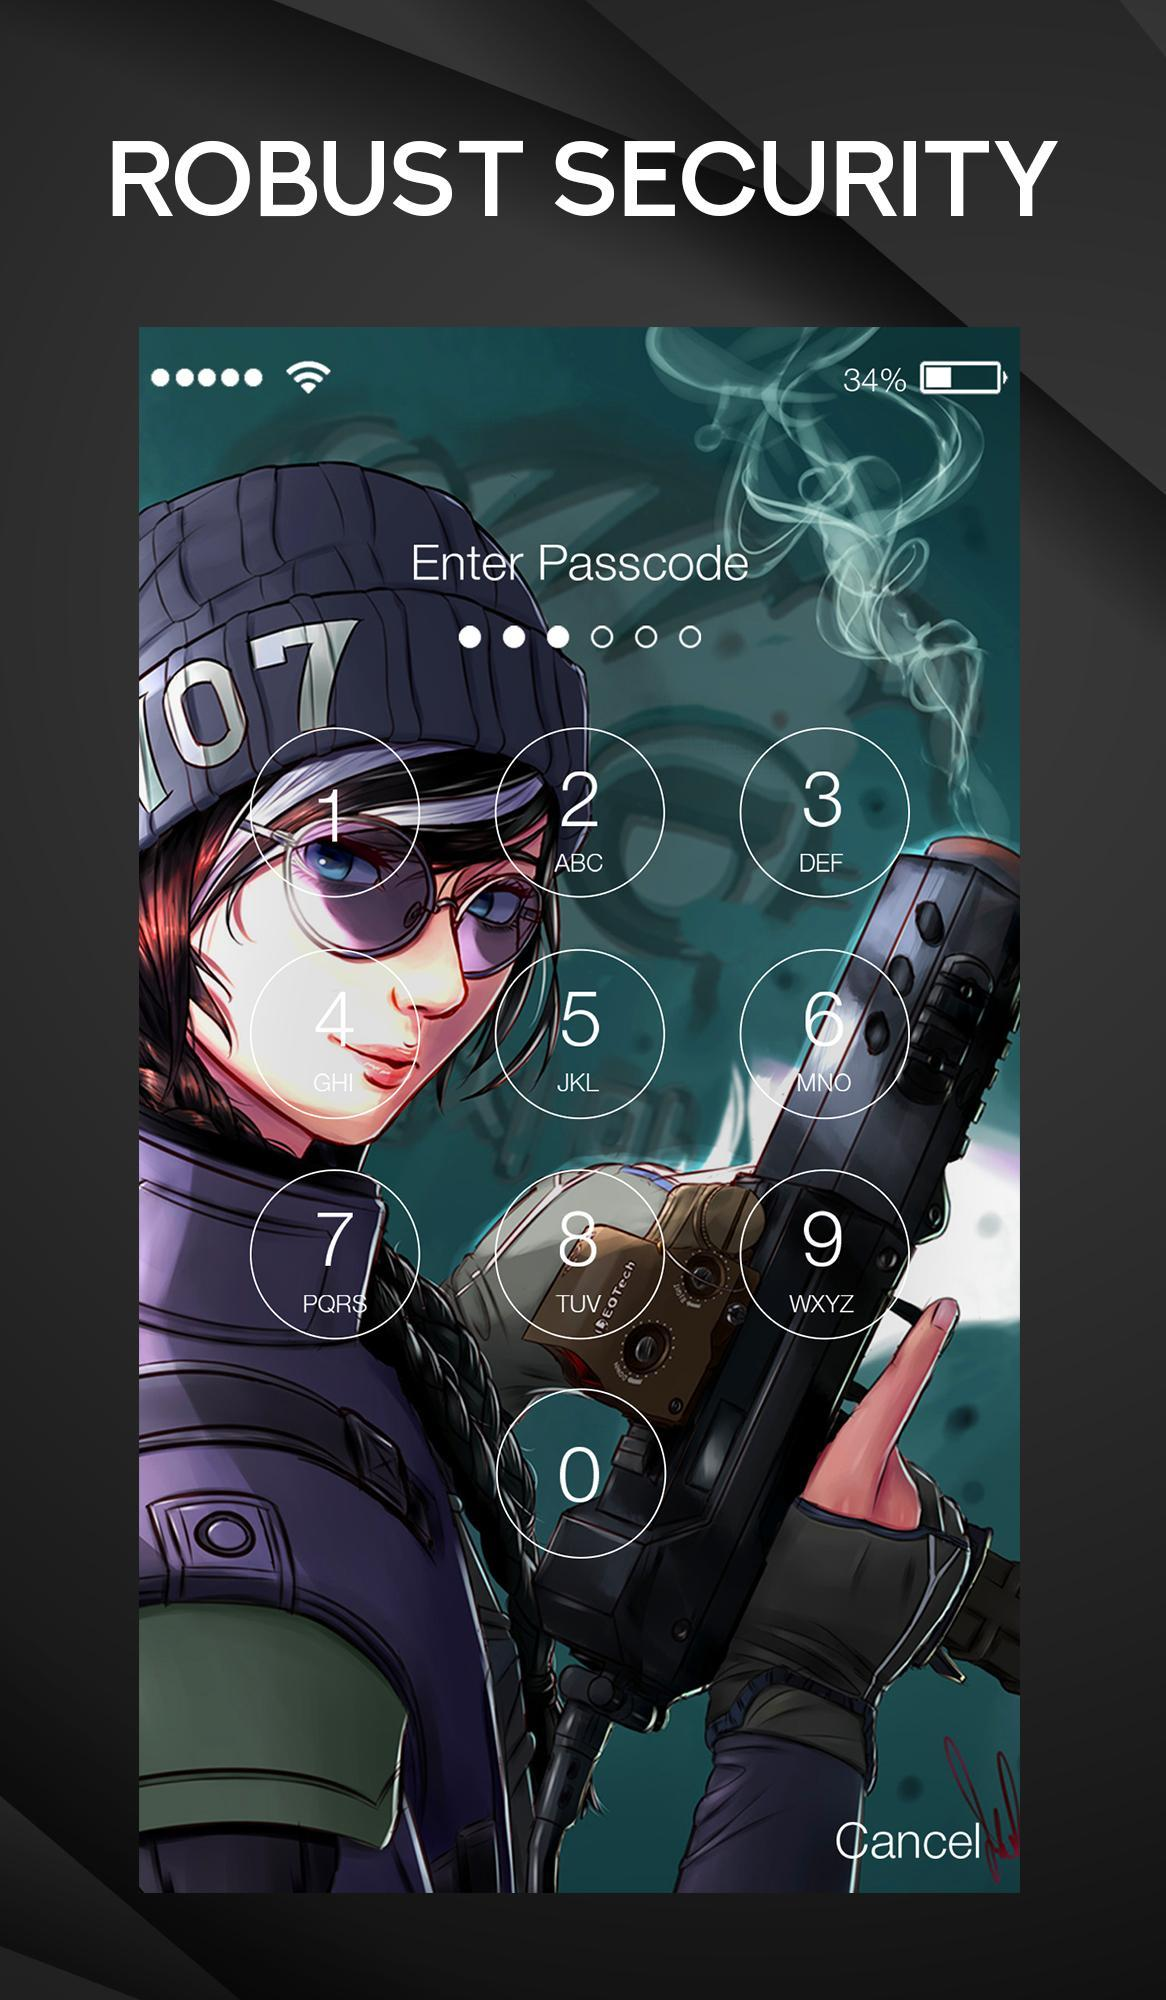 Dokkaebi Wallpaper Rainbow Six Siege Lock Screen For Android Apk